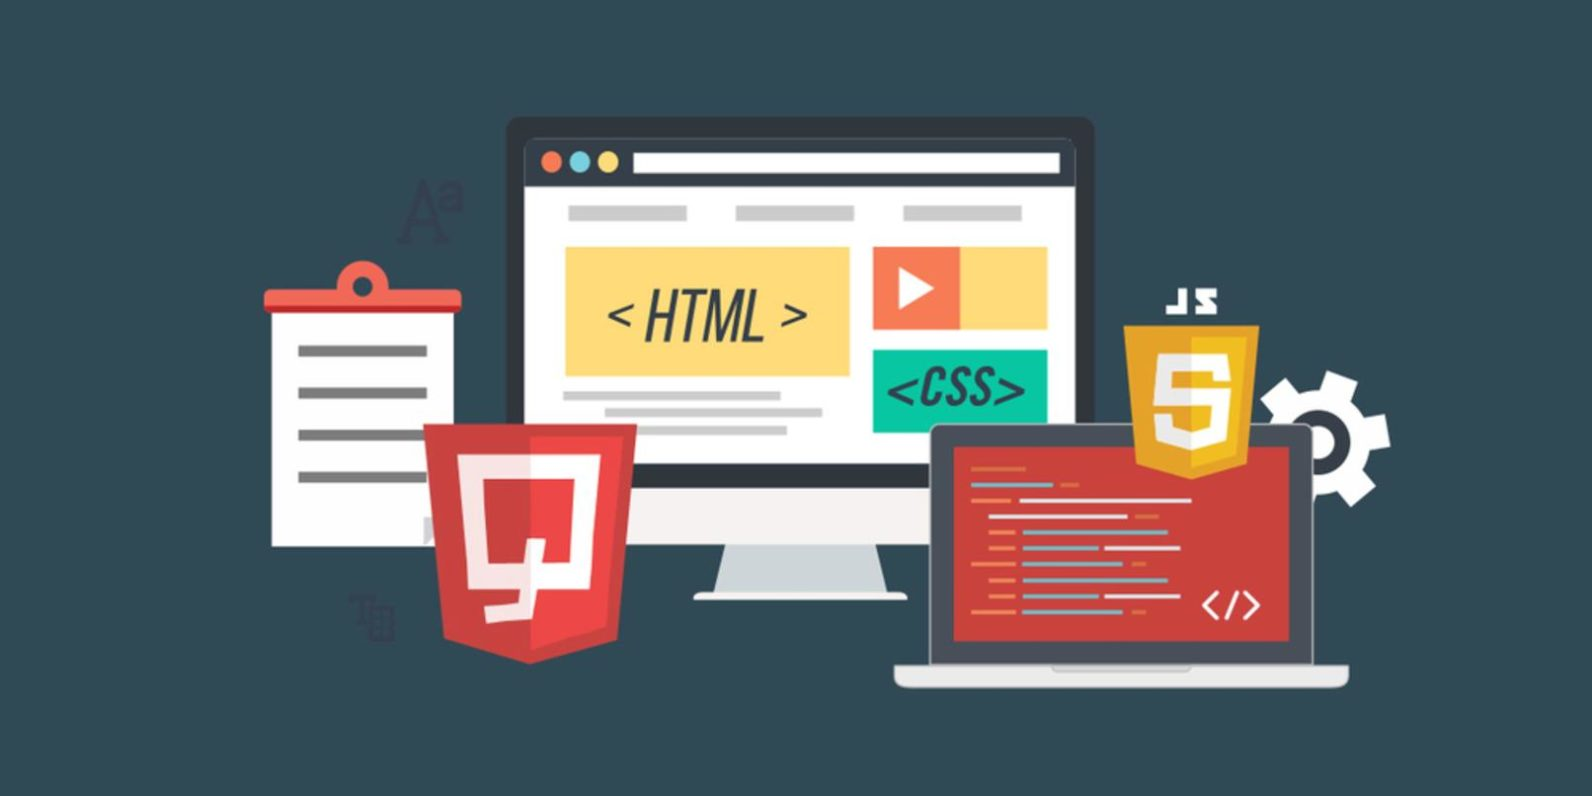 Pros and cons of front end development